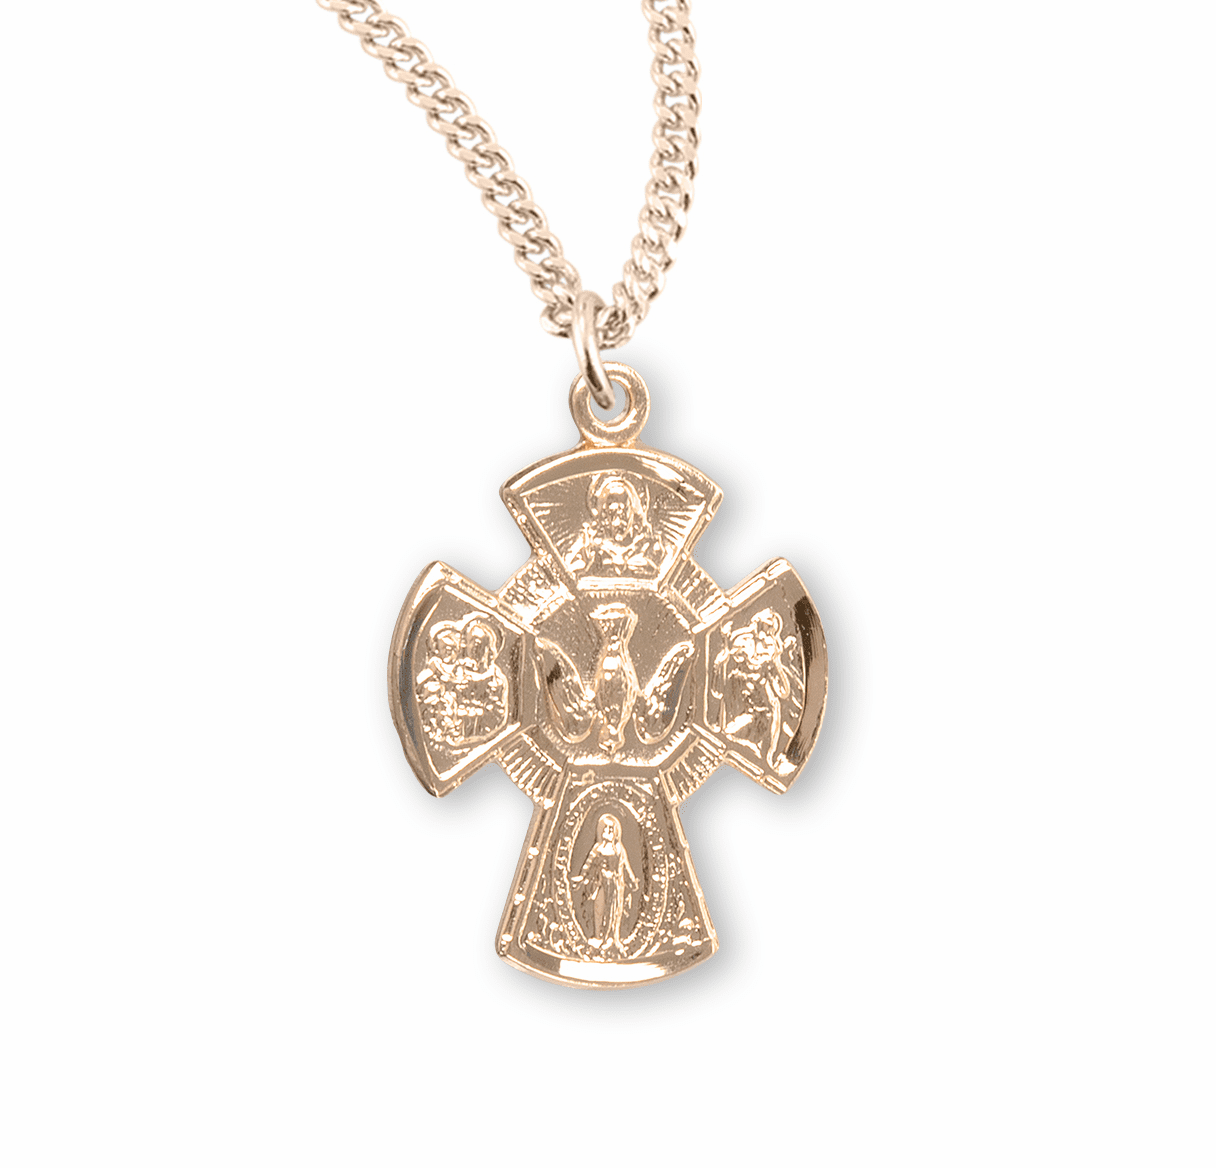 Holy Spirit Gold 4-Way Cross Medal Necklace by HMH Religious